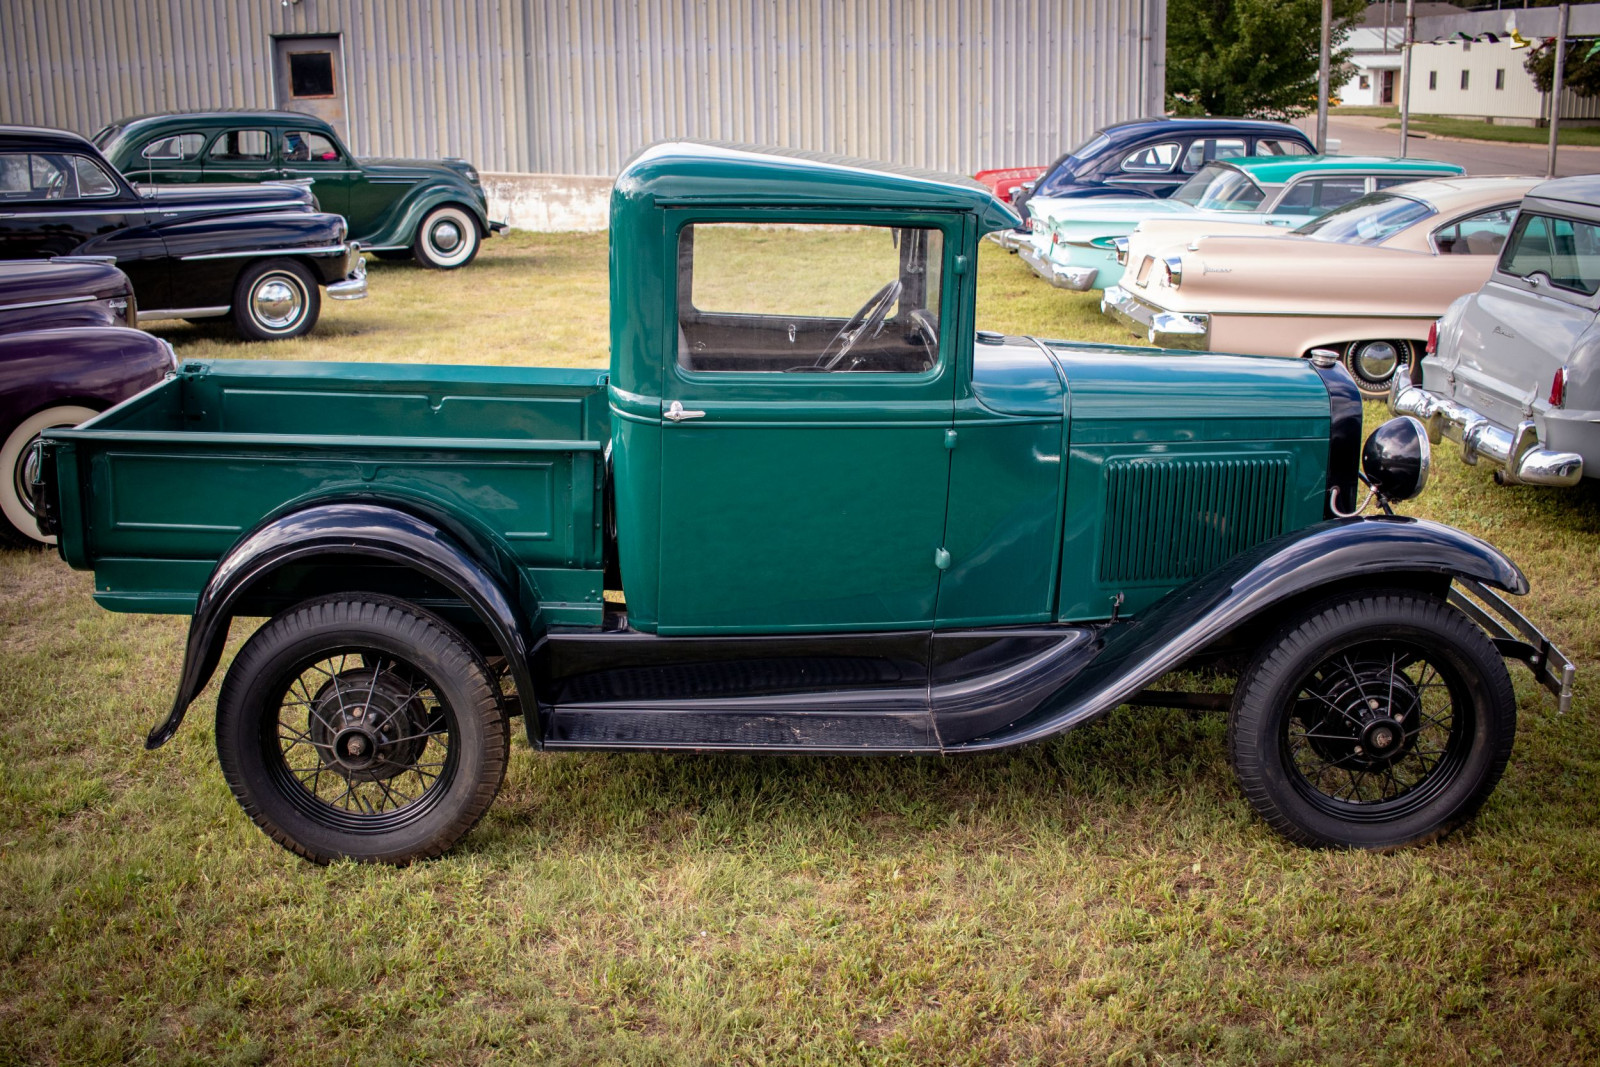 1930 Ford Model A Pickup - Image 4